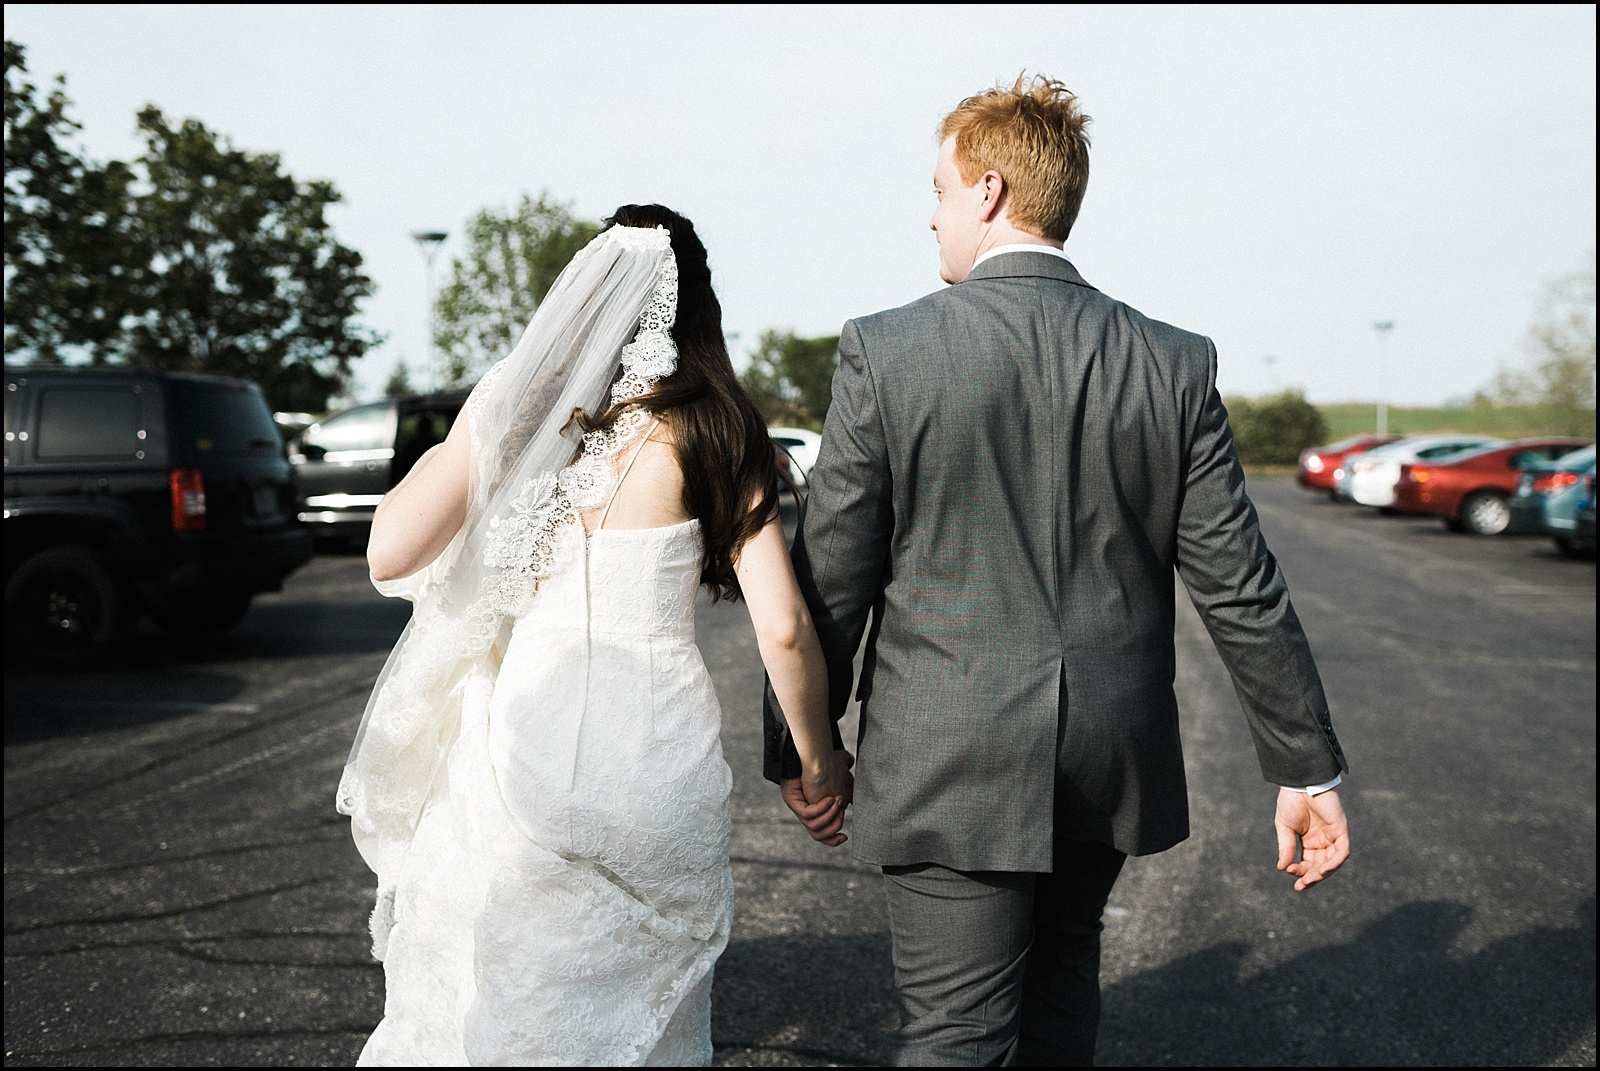 Bride and groom walking to car